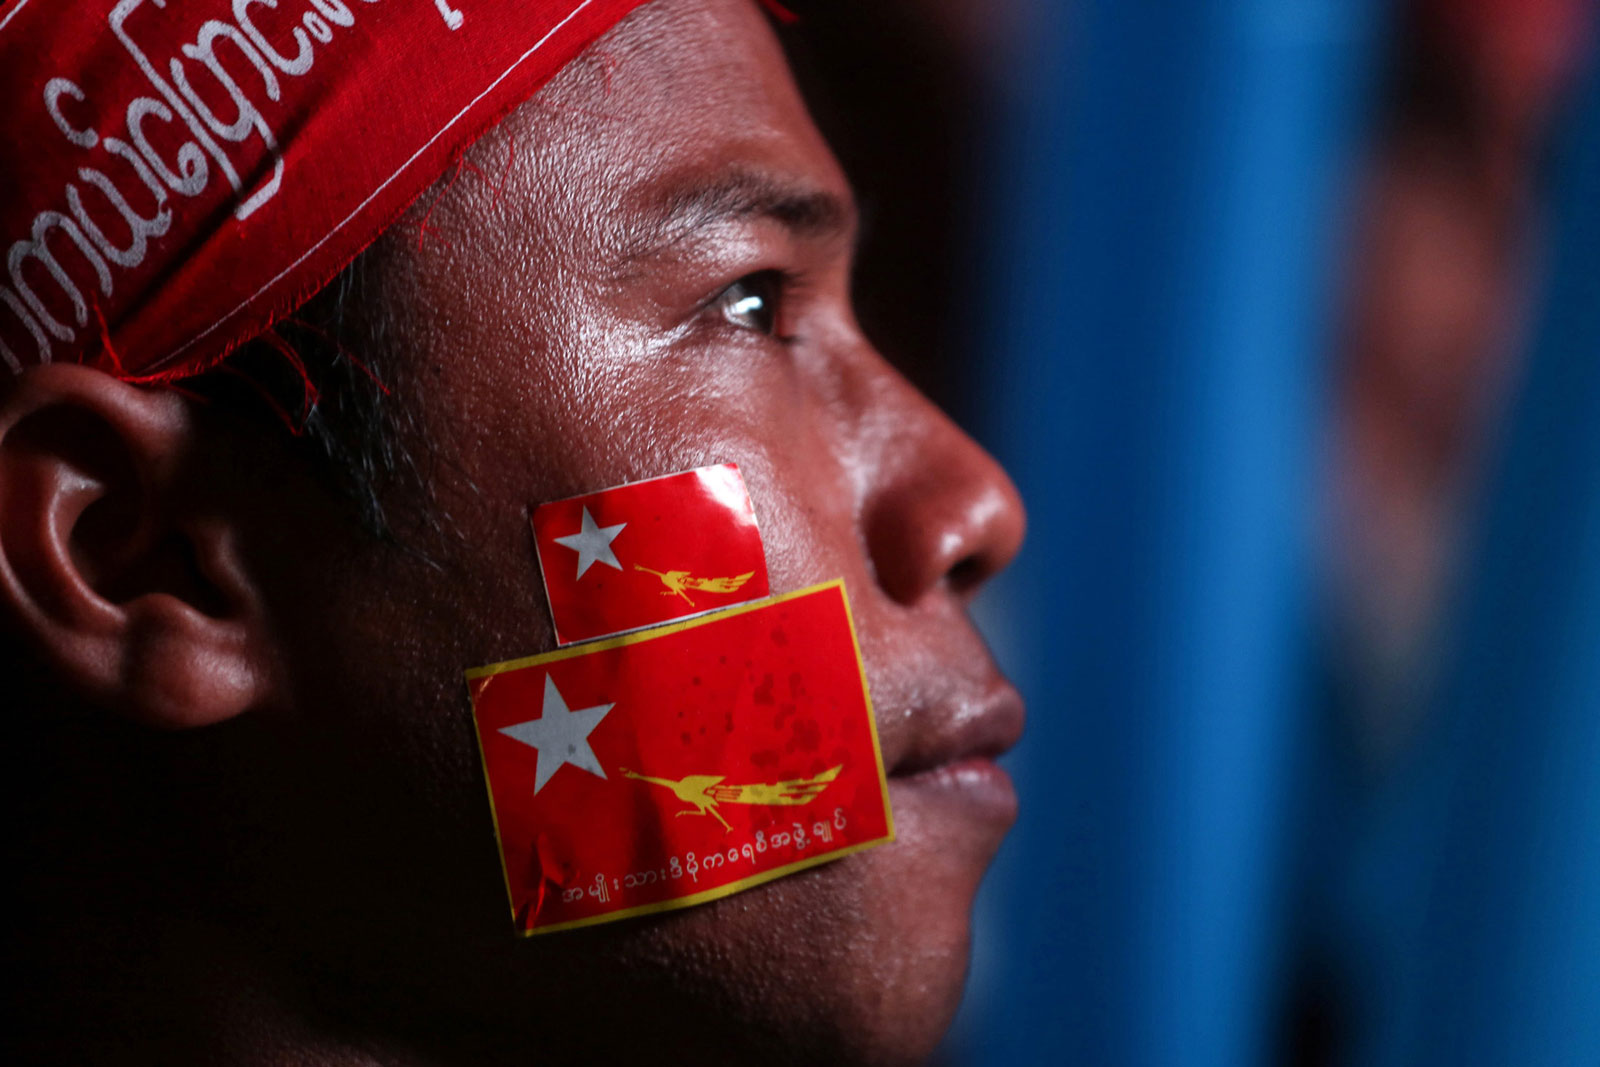 A National League for Democracy party supporter looks on during celebrations of election results outside the party headquarters in Yangon, Myanmar